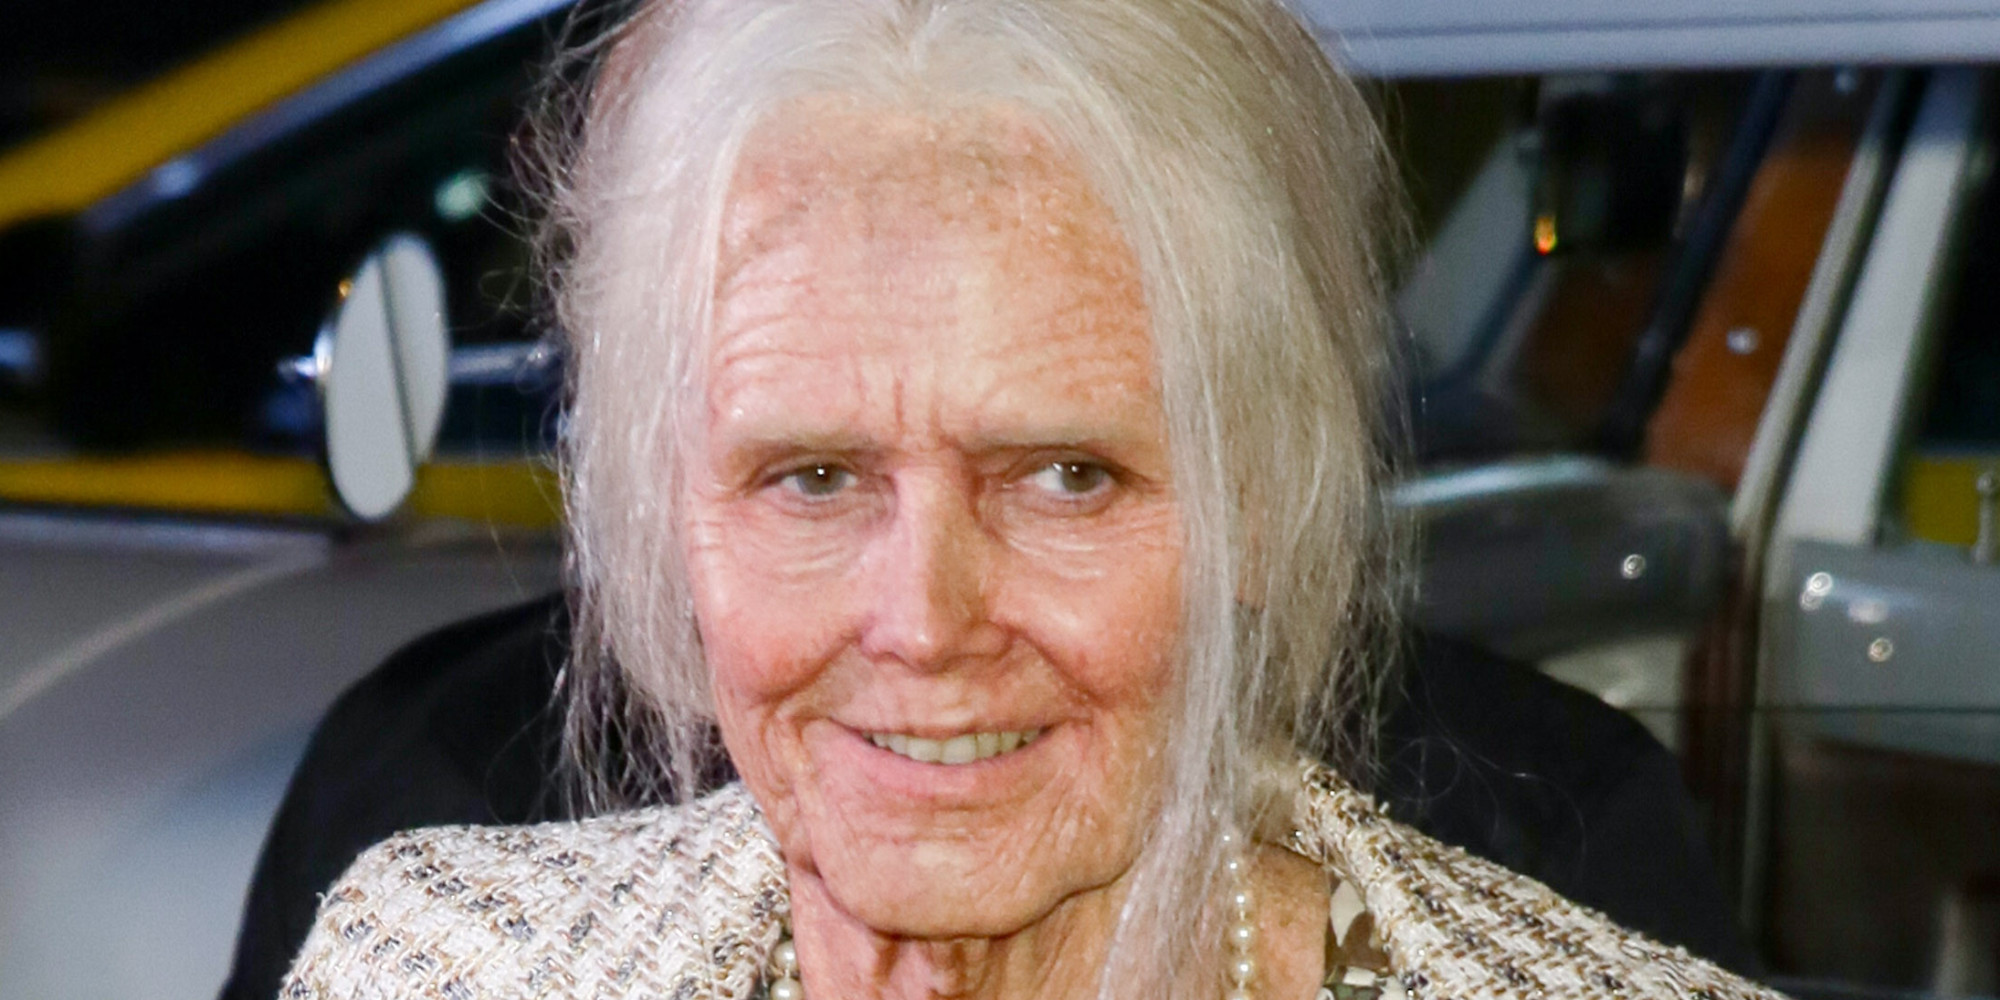 Heidi Klum Transforms Herself Into Old Lady For Annual Halloween ...